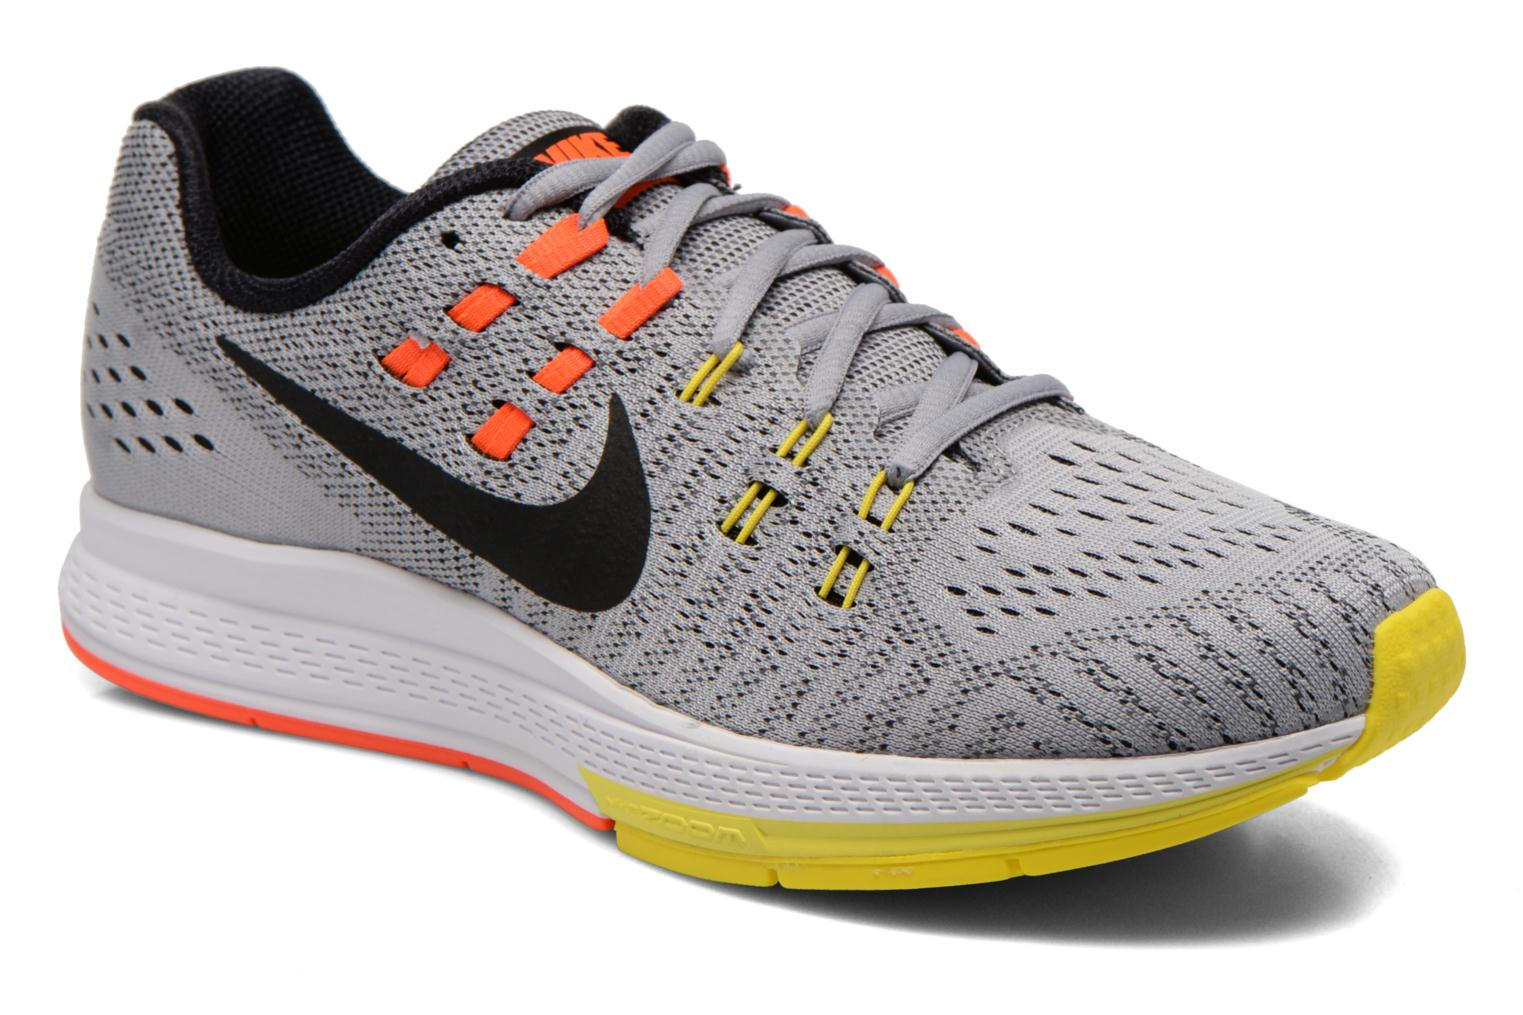 Nike Air Zoom Structure 19 Nike Sport shoes Men Wlf Gry/Blk Opt Yllw Ttl Crmsn